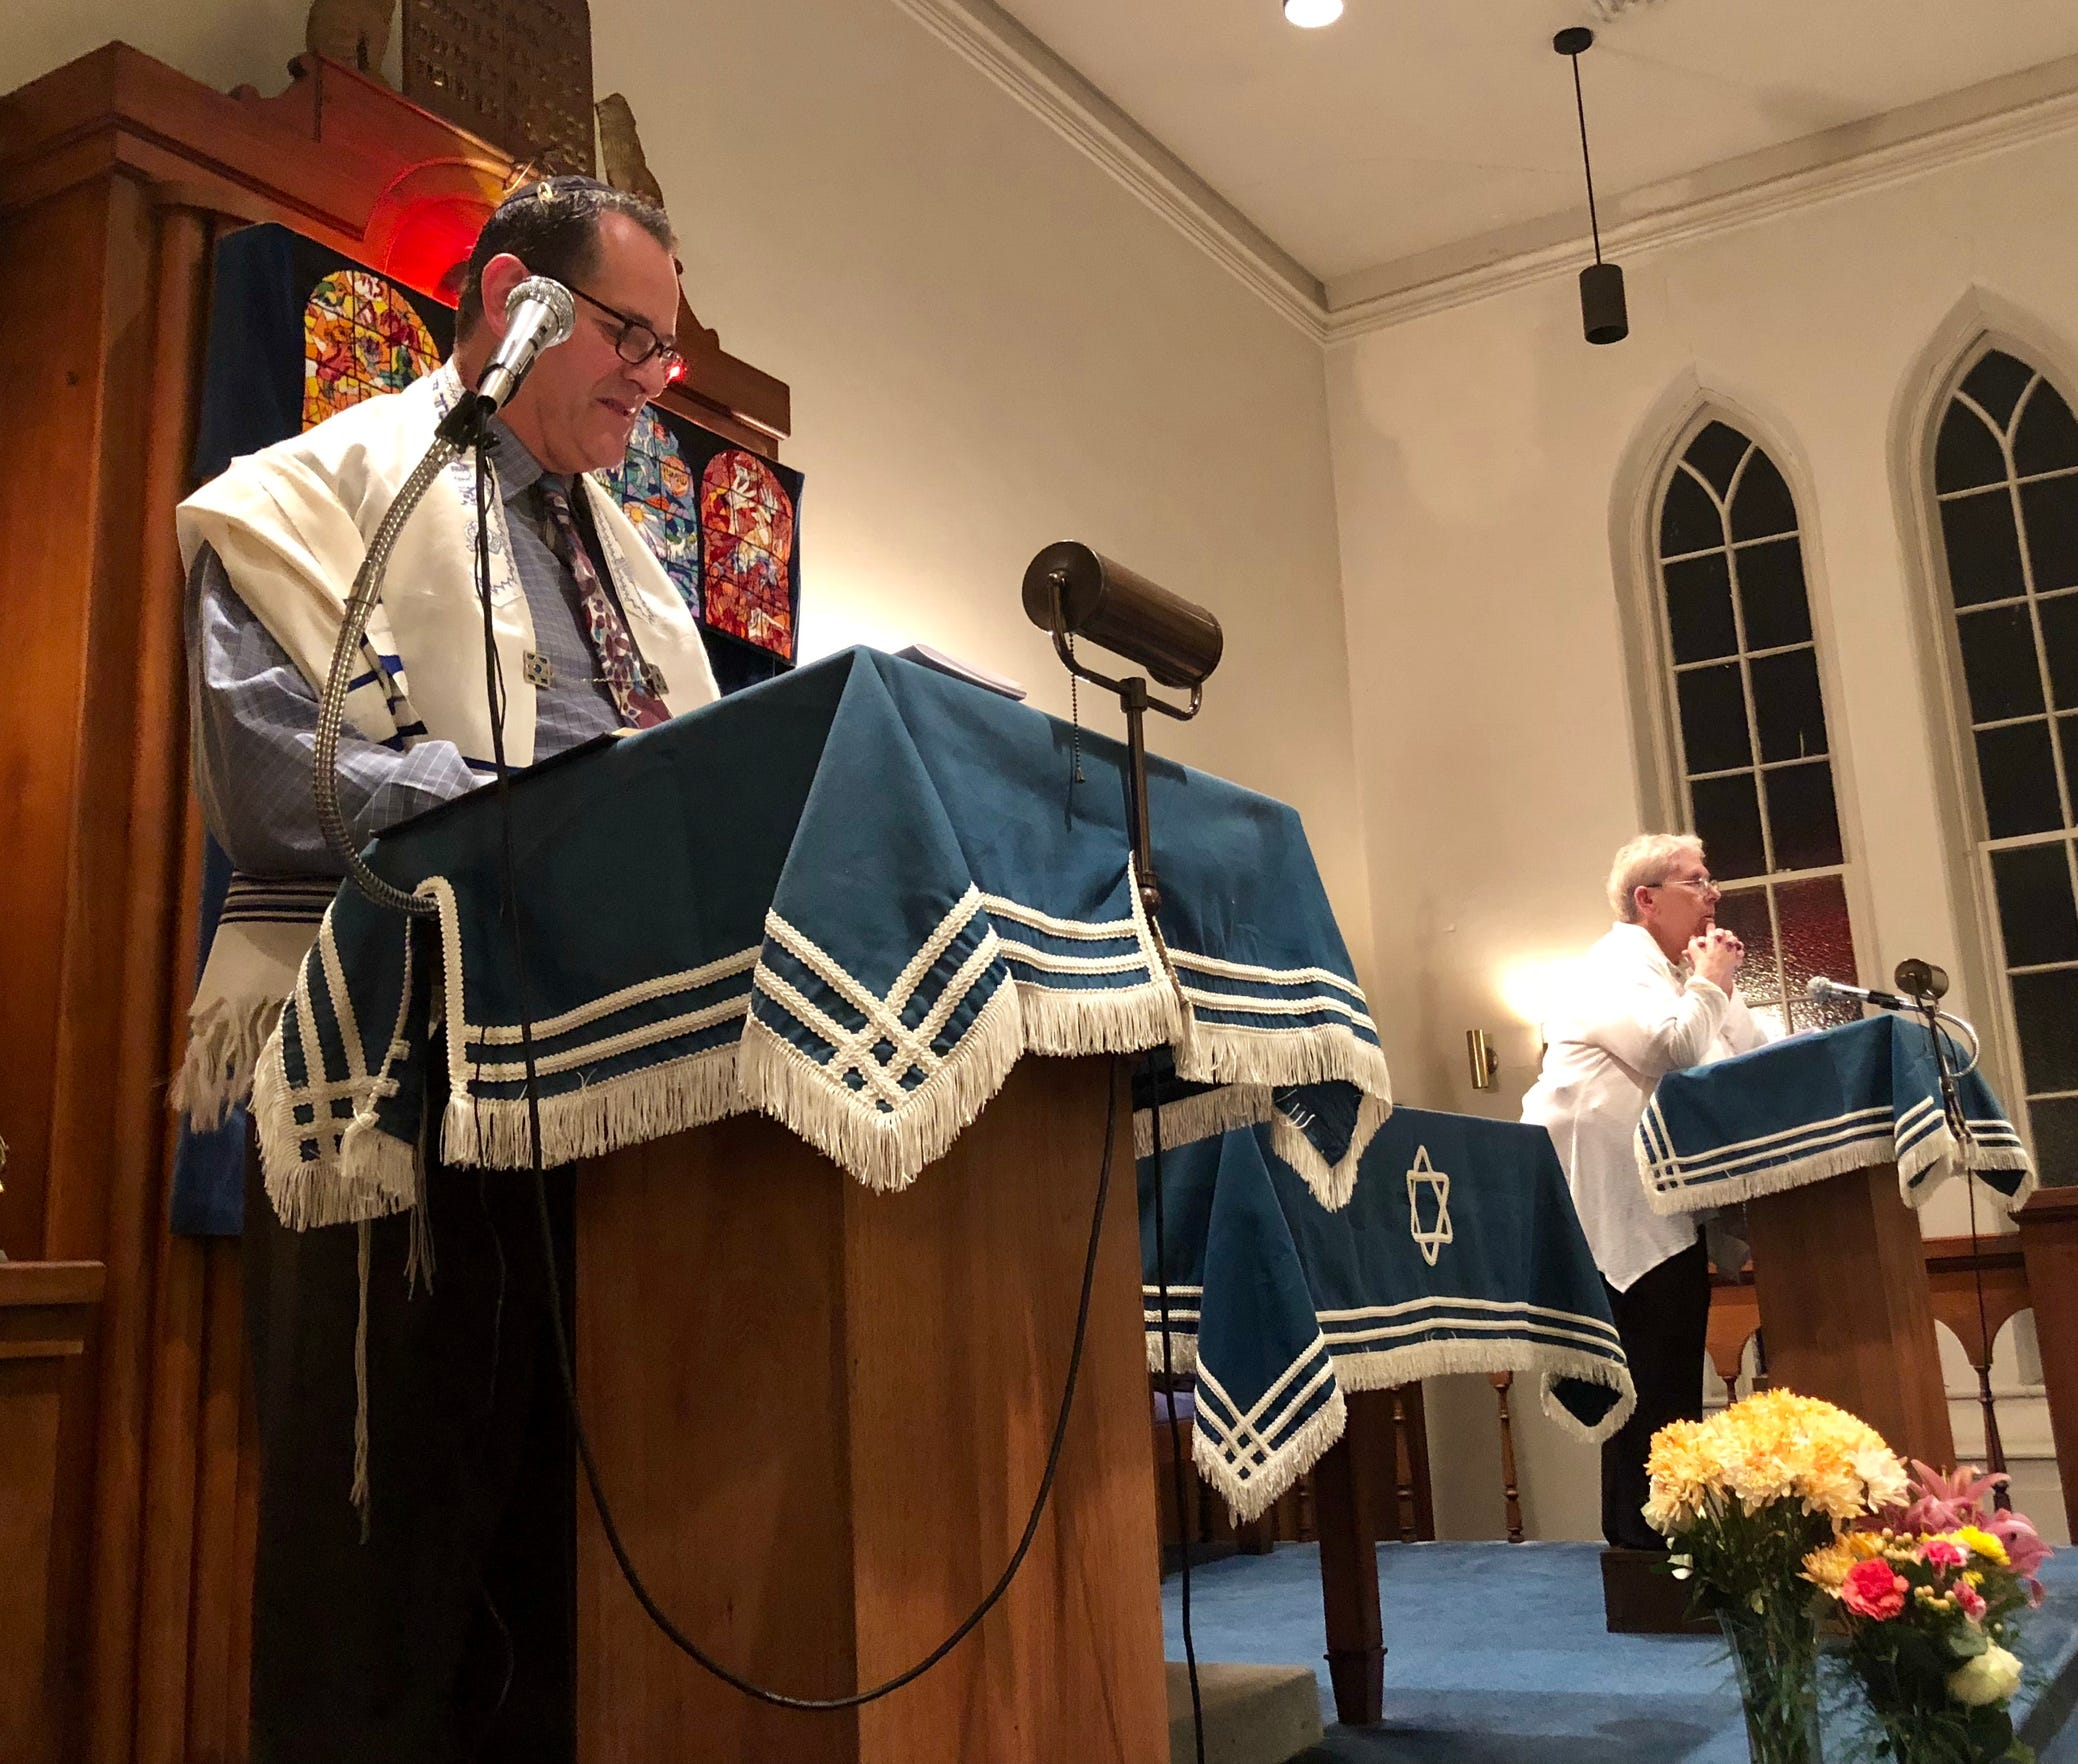 Rabbi Ilan Pardo (left) speaks to the audience at Congregation Sons of Israel in Chambersburg during a memorial service the evening of Tuesday, Oct. 30. The event was held to honor 11 Jewish people who were killed in a shooting in Pittsburgh a few days earlier. Also pictured: Lynne Newman (right), a member of the congregation.